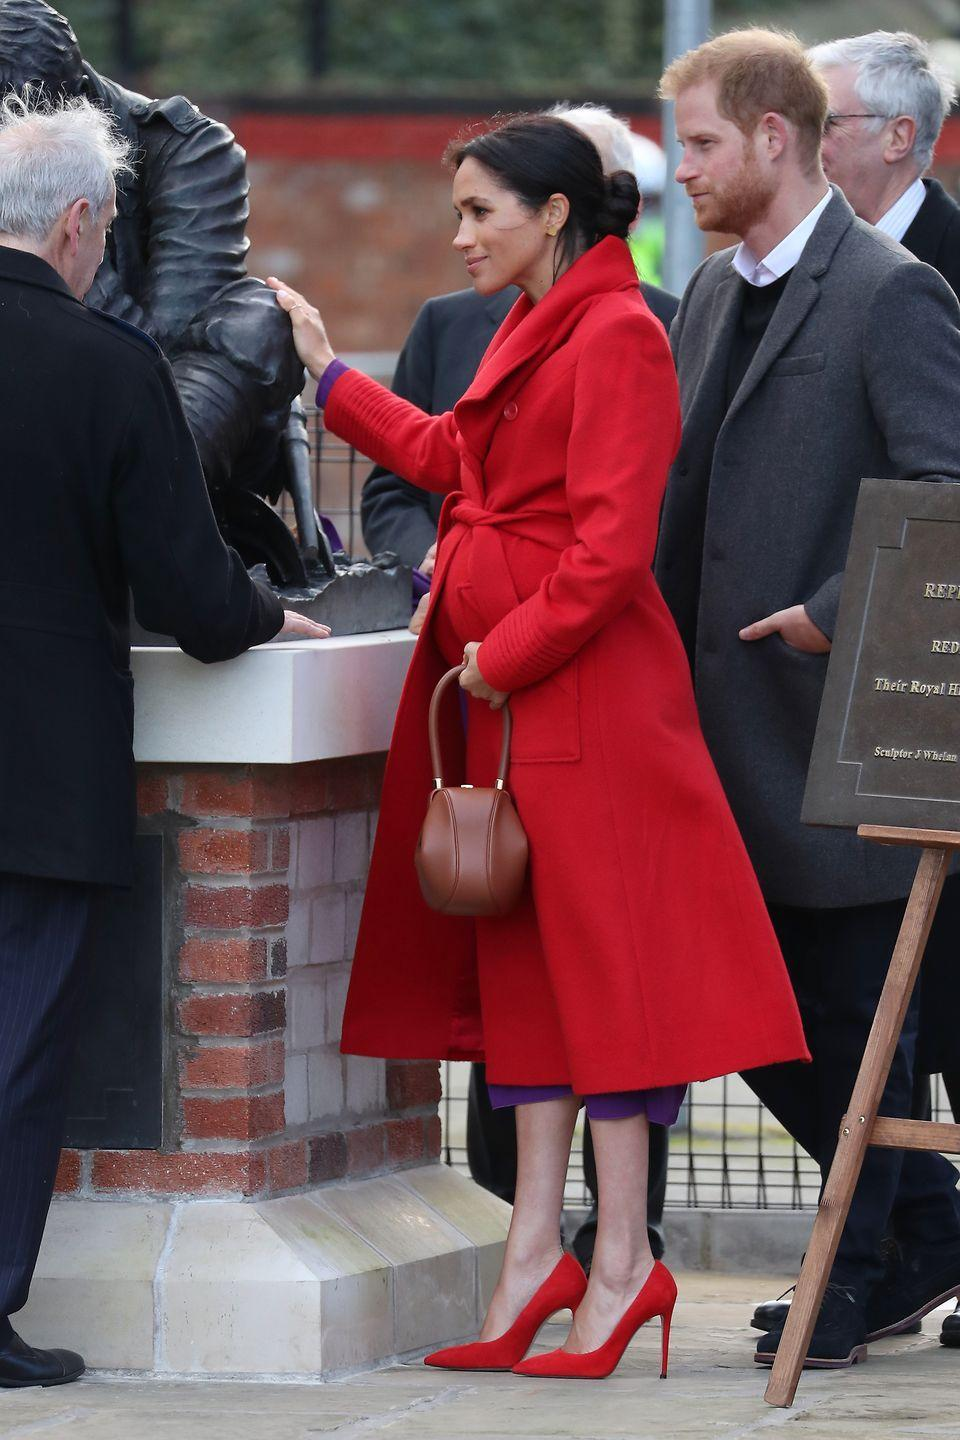 <p>The Duchess chose a bold coat with red heels for her first joint engagement with Prince Harry of the year. She paired the bright red look with matching heels and a purple dress for her day of events in Birkenhead.</p>